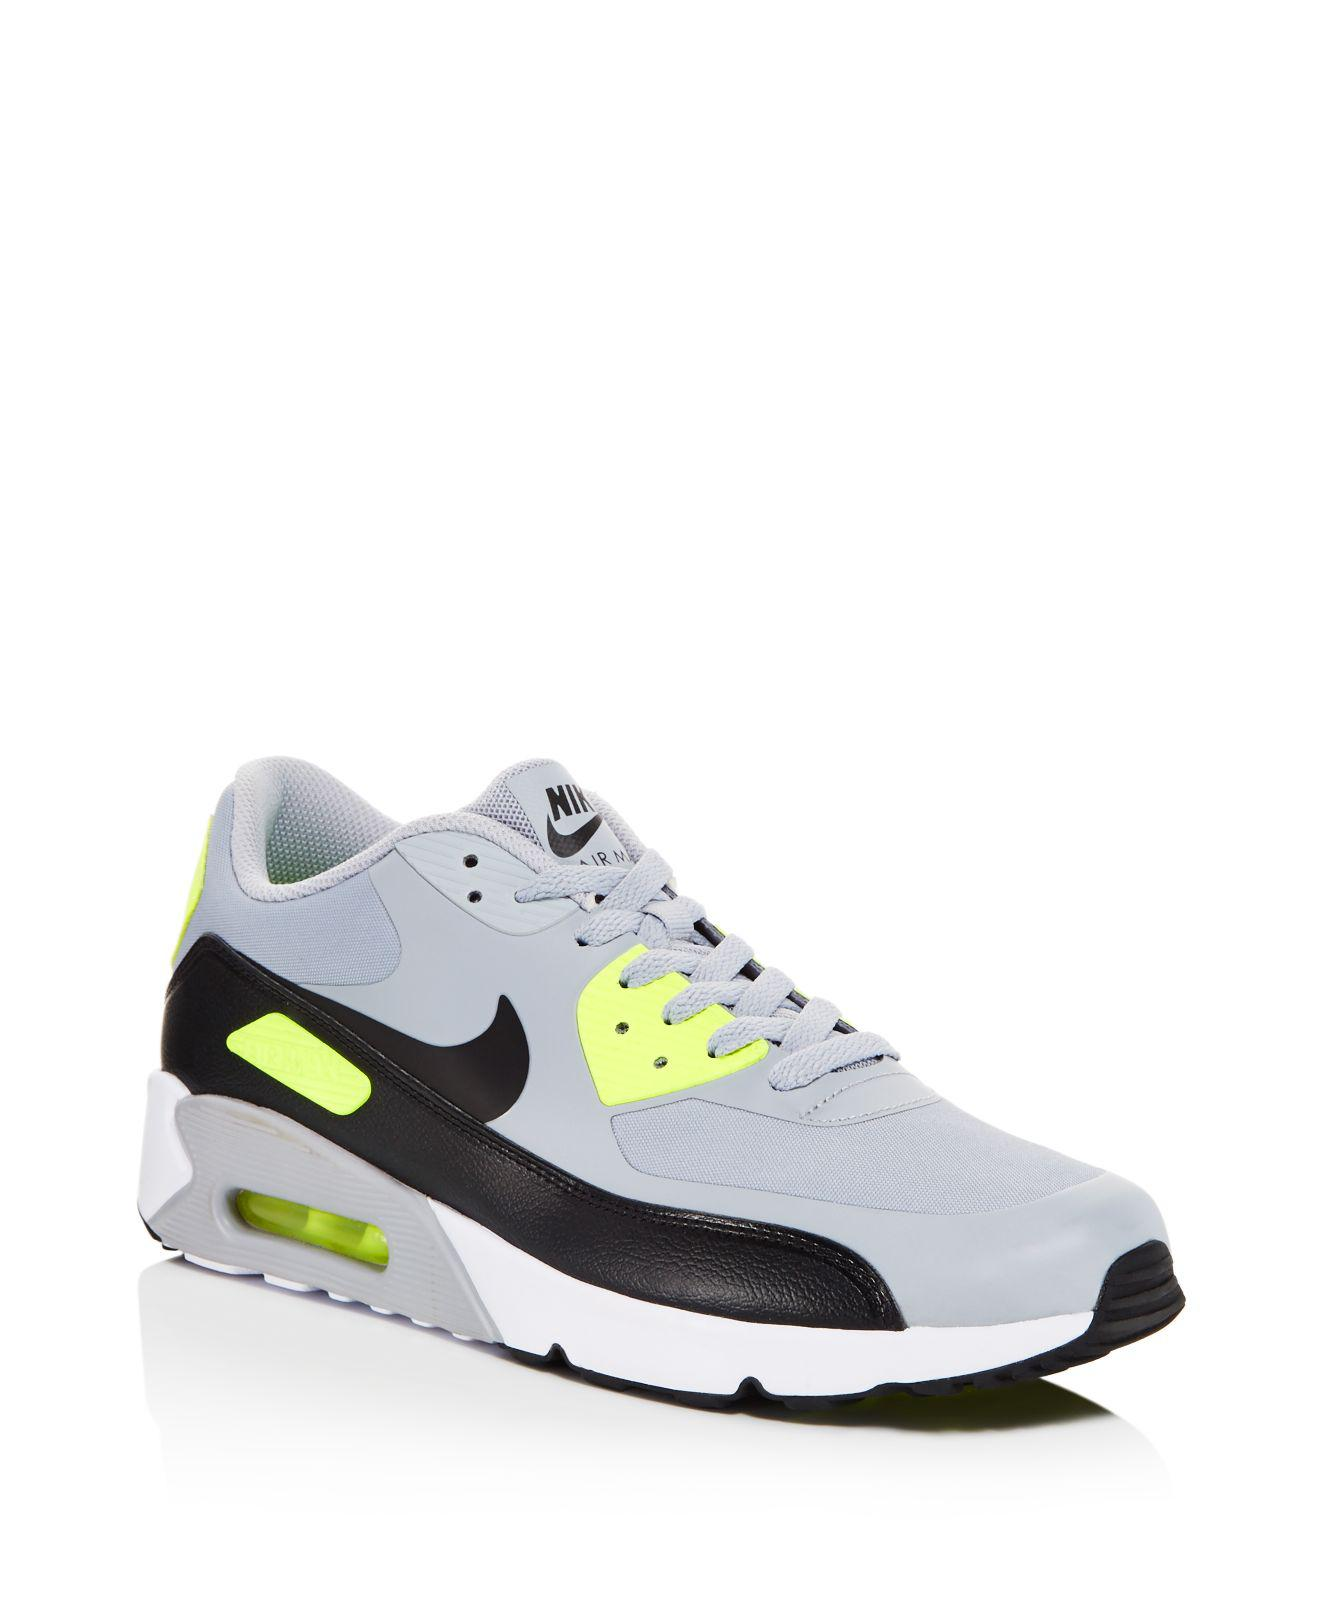 Nike Men's Air Max 90 Ultra 2.0 Lace Up Sneakers 7zgzOW6D5